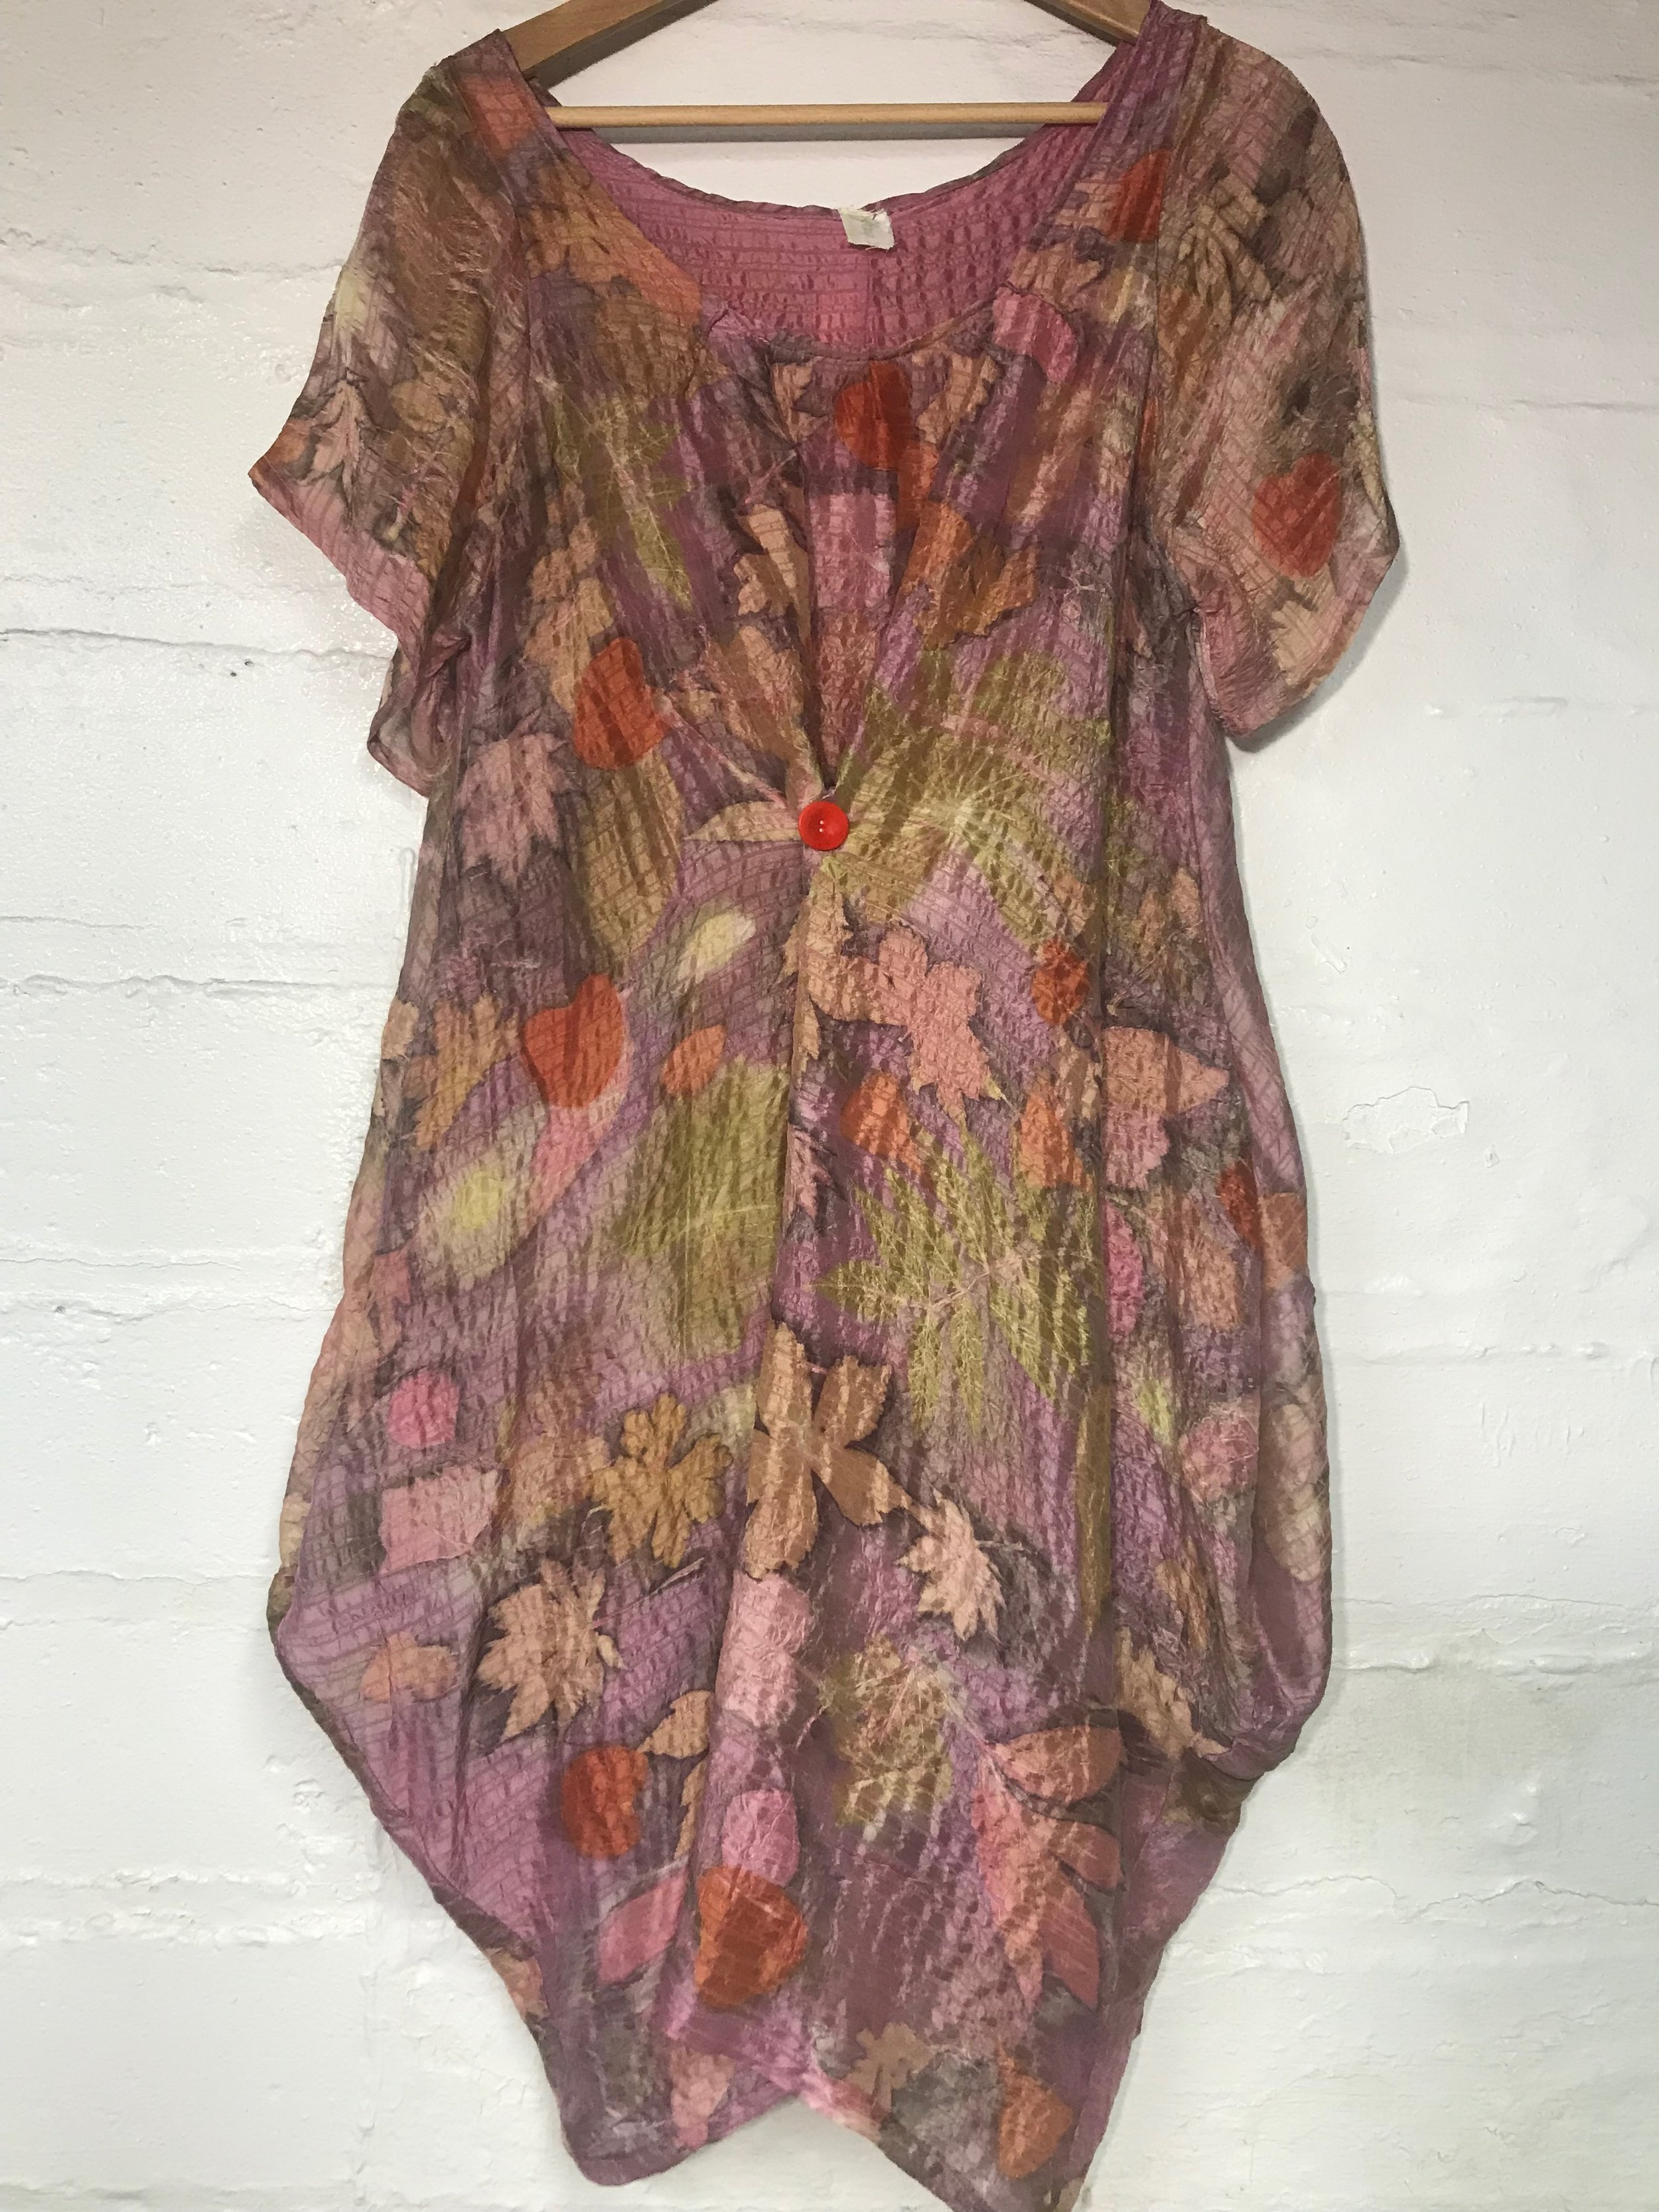 Silk dyed in cochineal and printed with various local leaves.